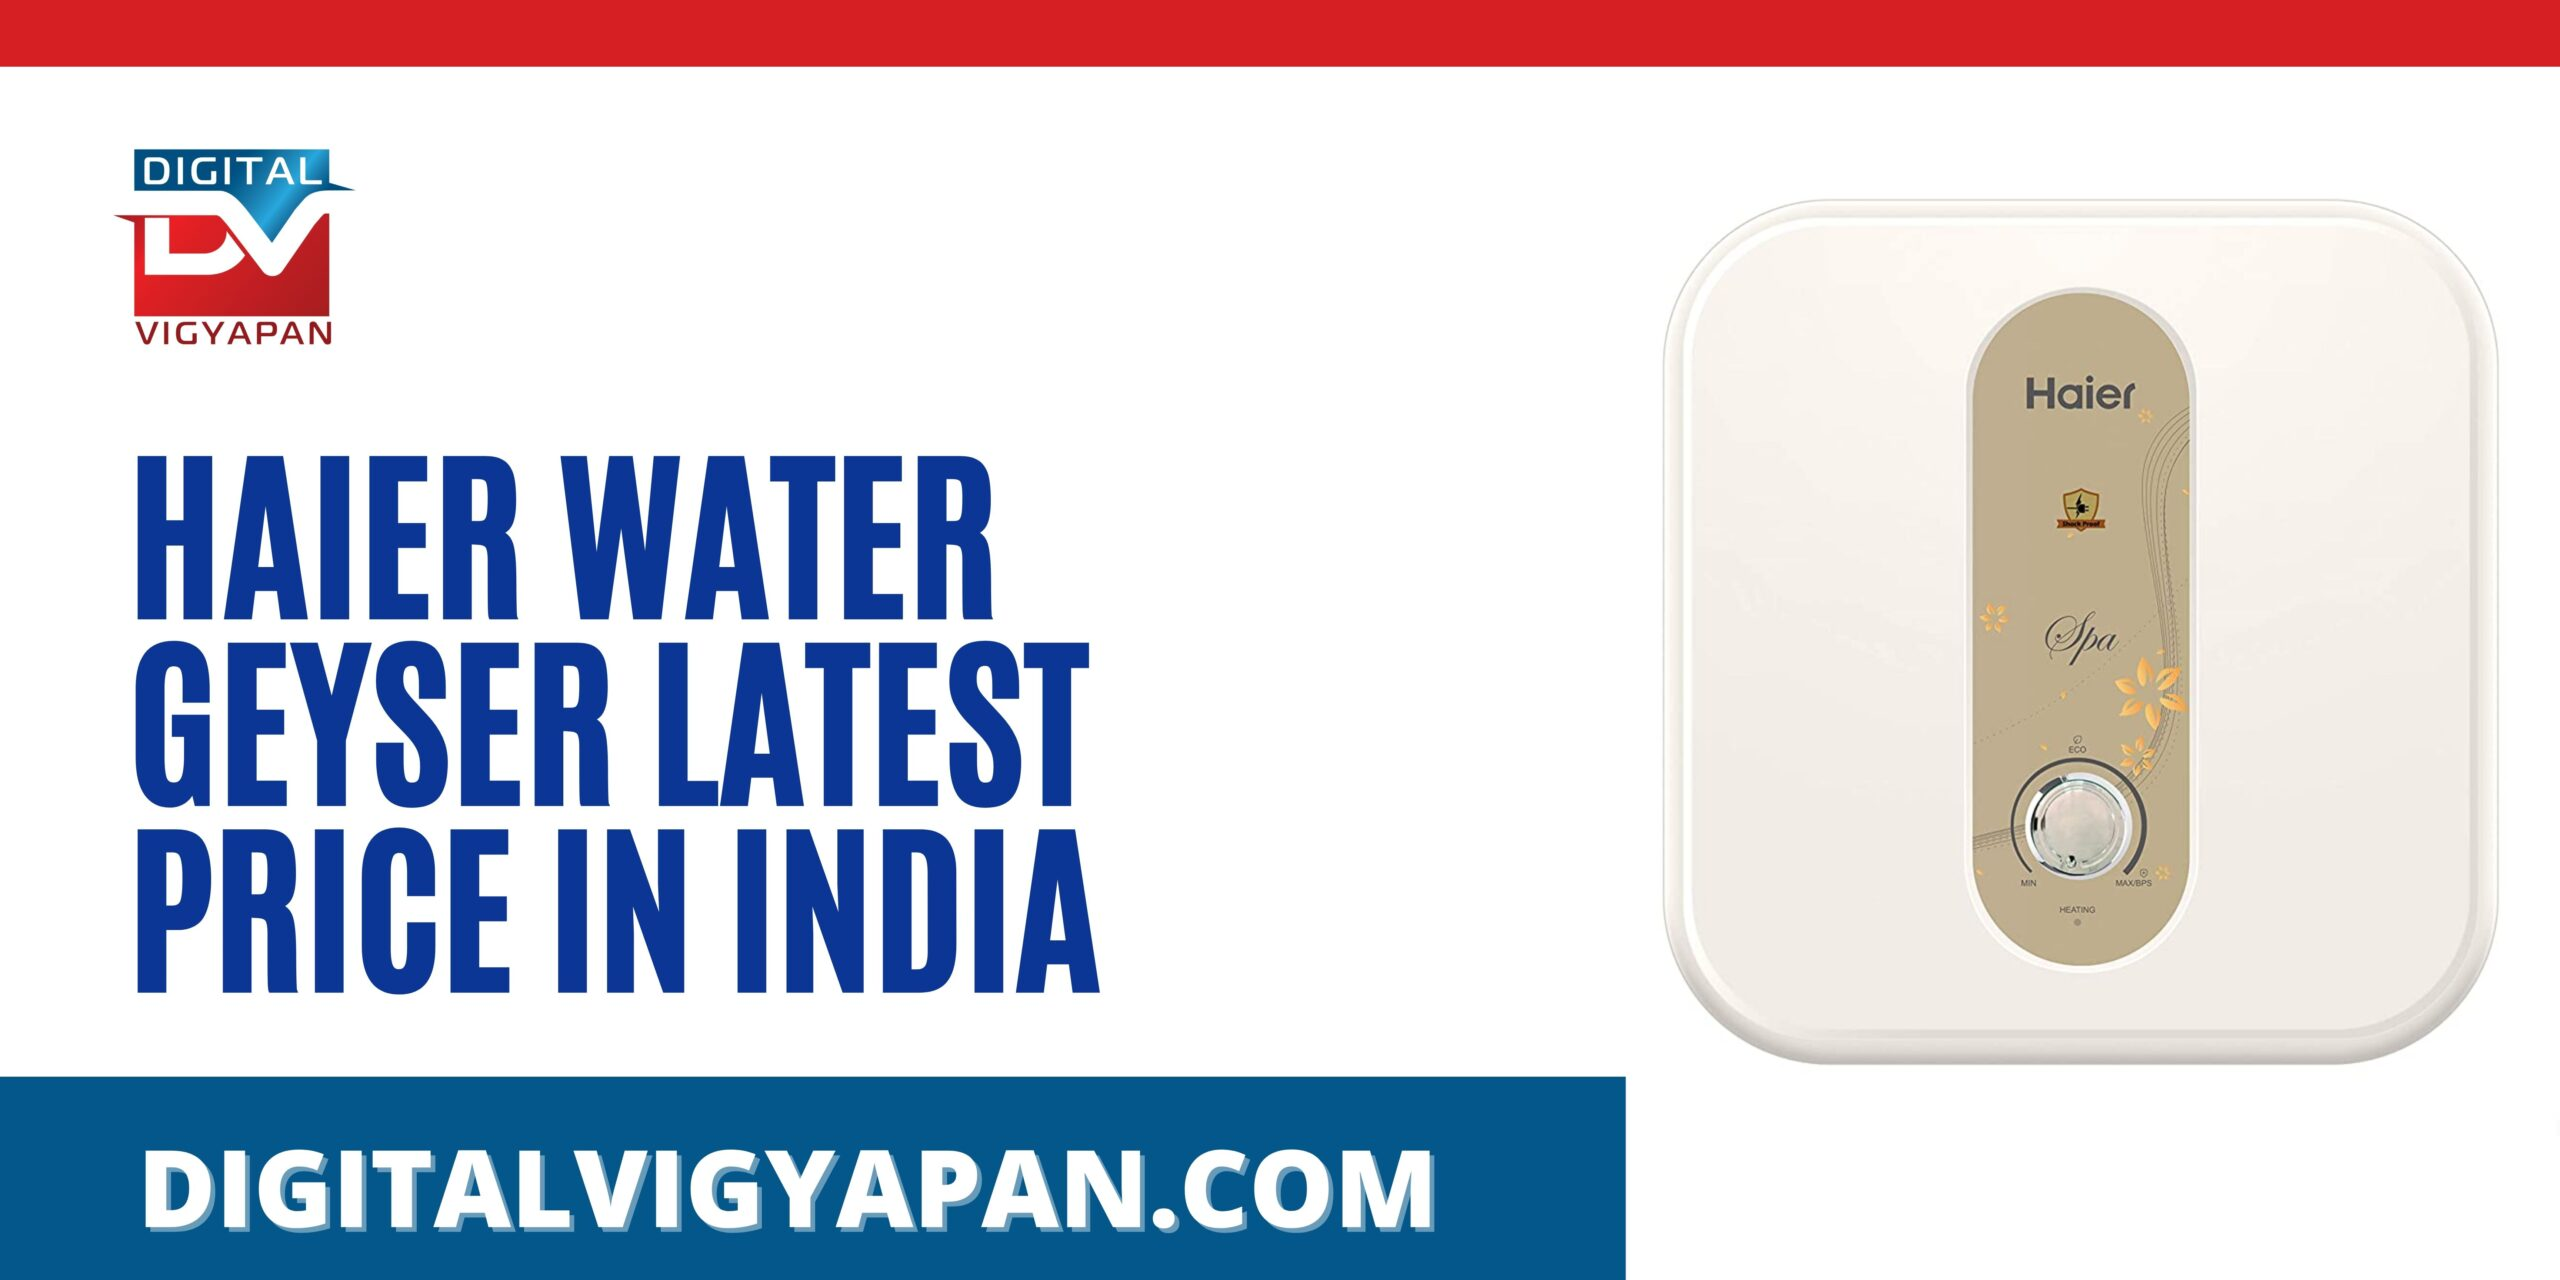 Haier Water Geyser Latest Price In India